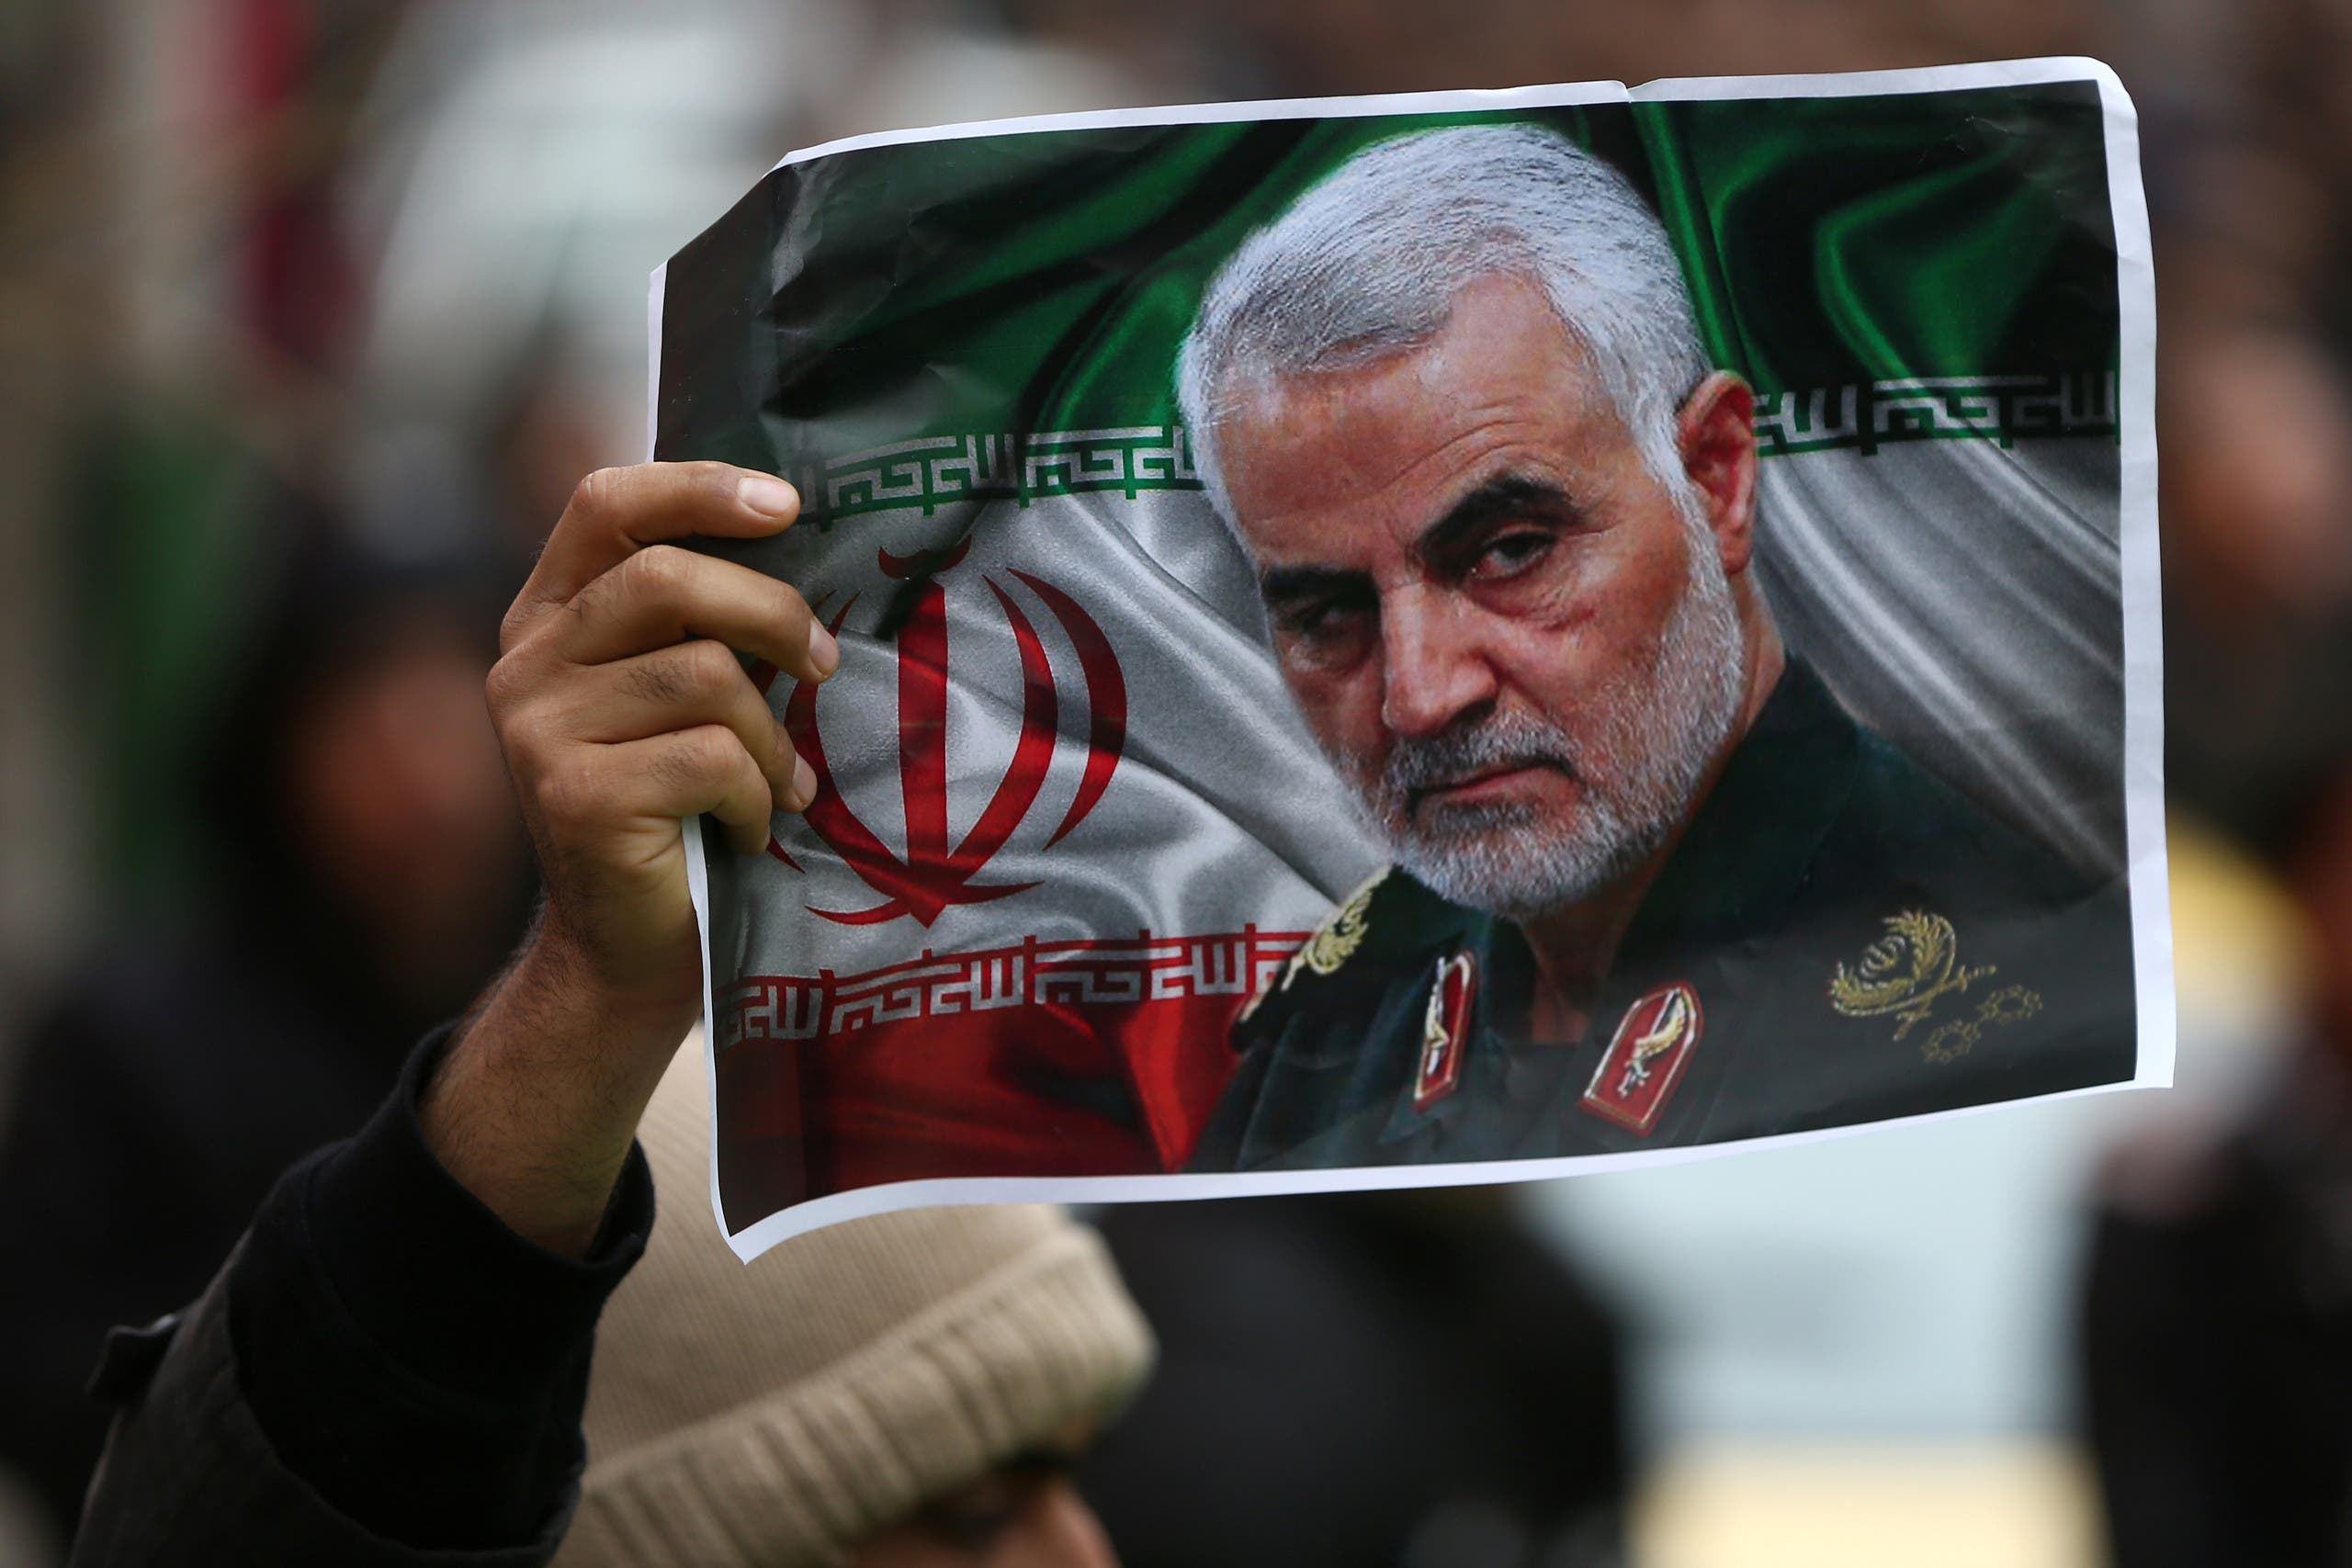 An Iranian holds a picture of late General Qassem Soleimani in Tehran, Iran January 4, 2020. (Reuters)